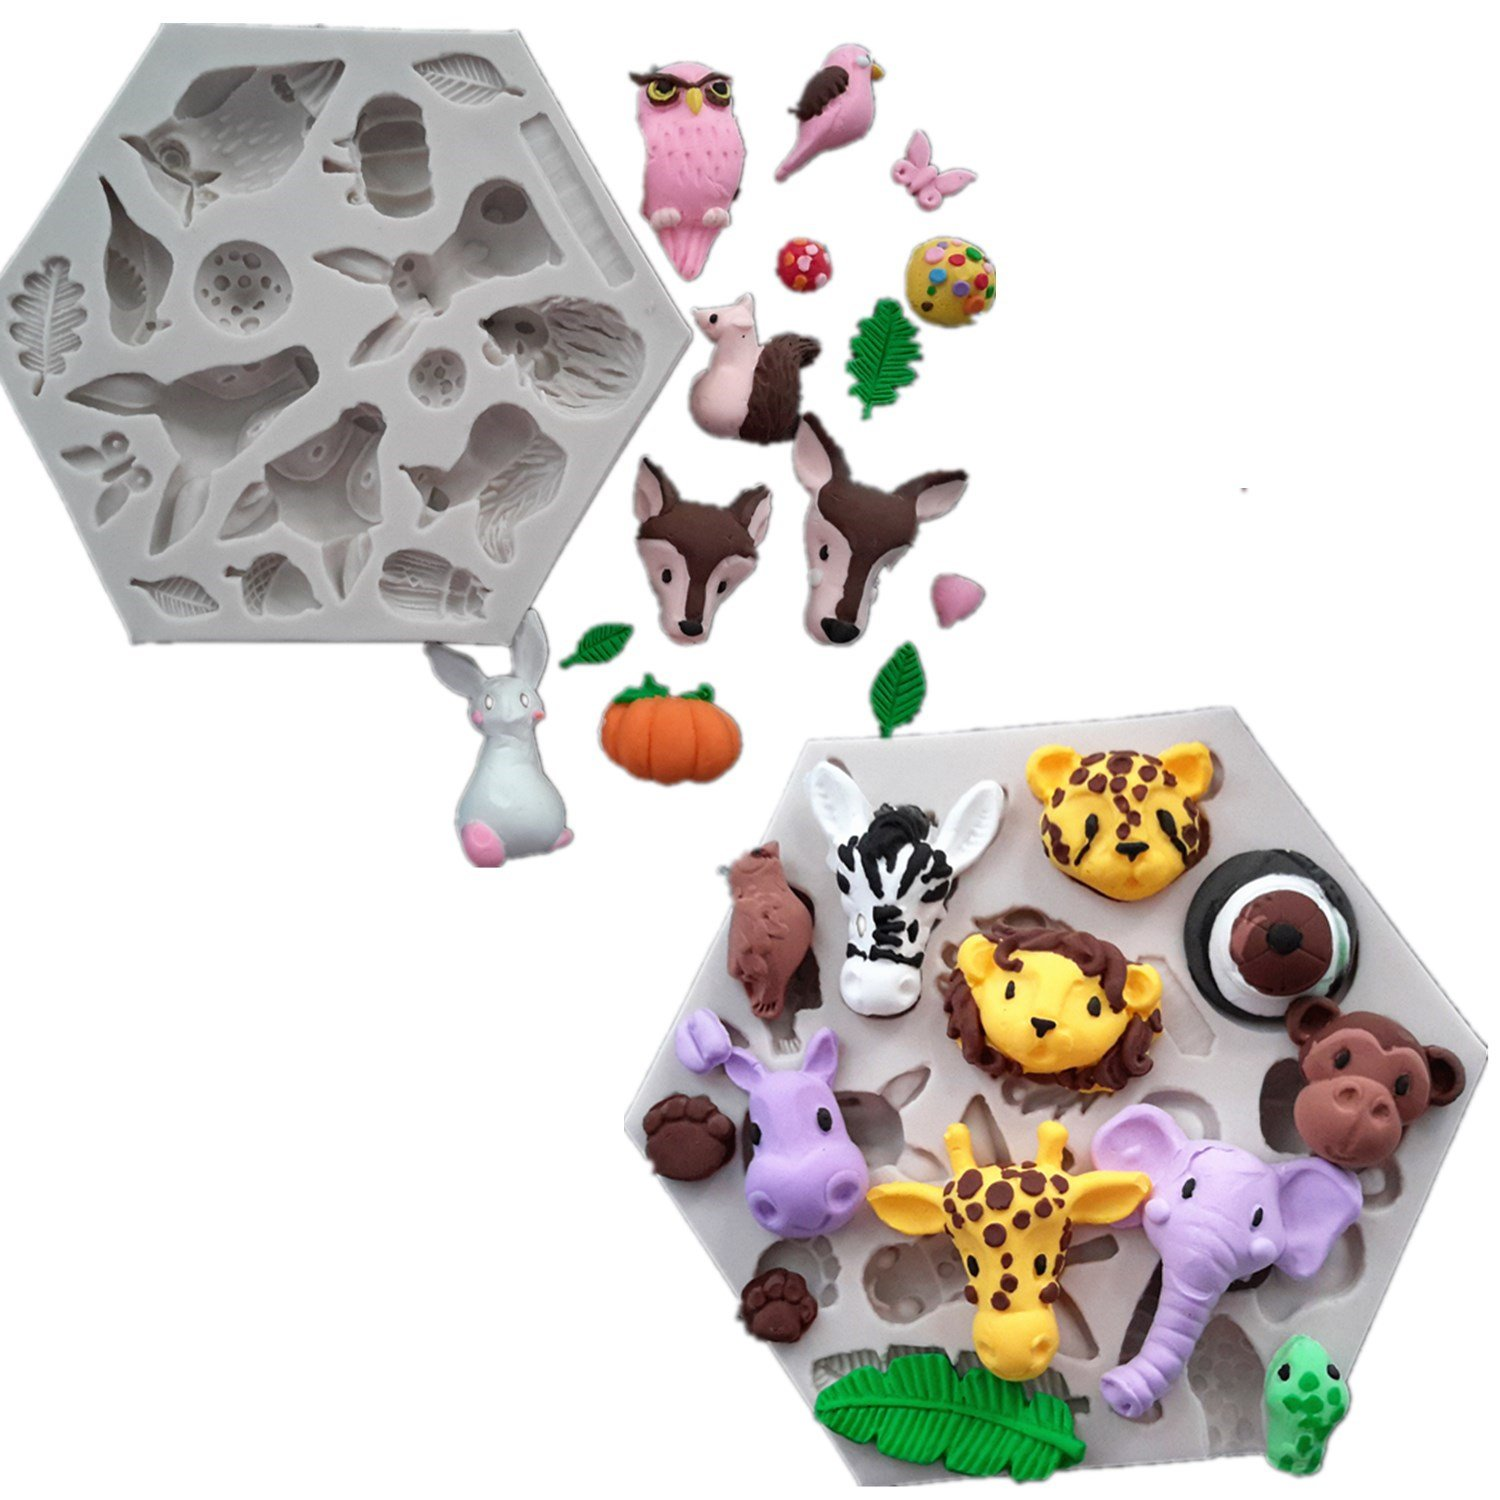 Efivs Arts Set of 2 Nauture Forest Animals Lion Leopard Giraffe Hedgehog Squirrel Zebra Elephant Fondant Silicone Molds Candycraft Cake Making Mold Chocolate Candy Baking Tools by Efivs Arts